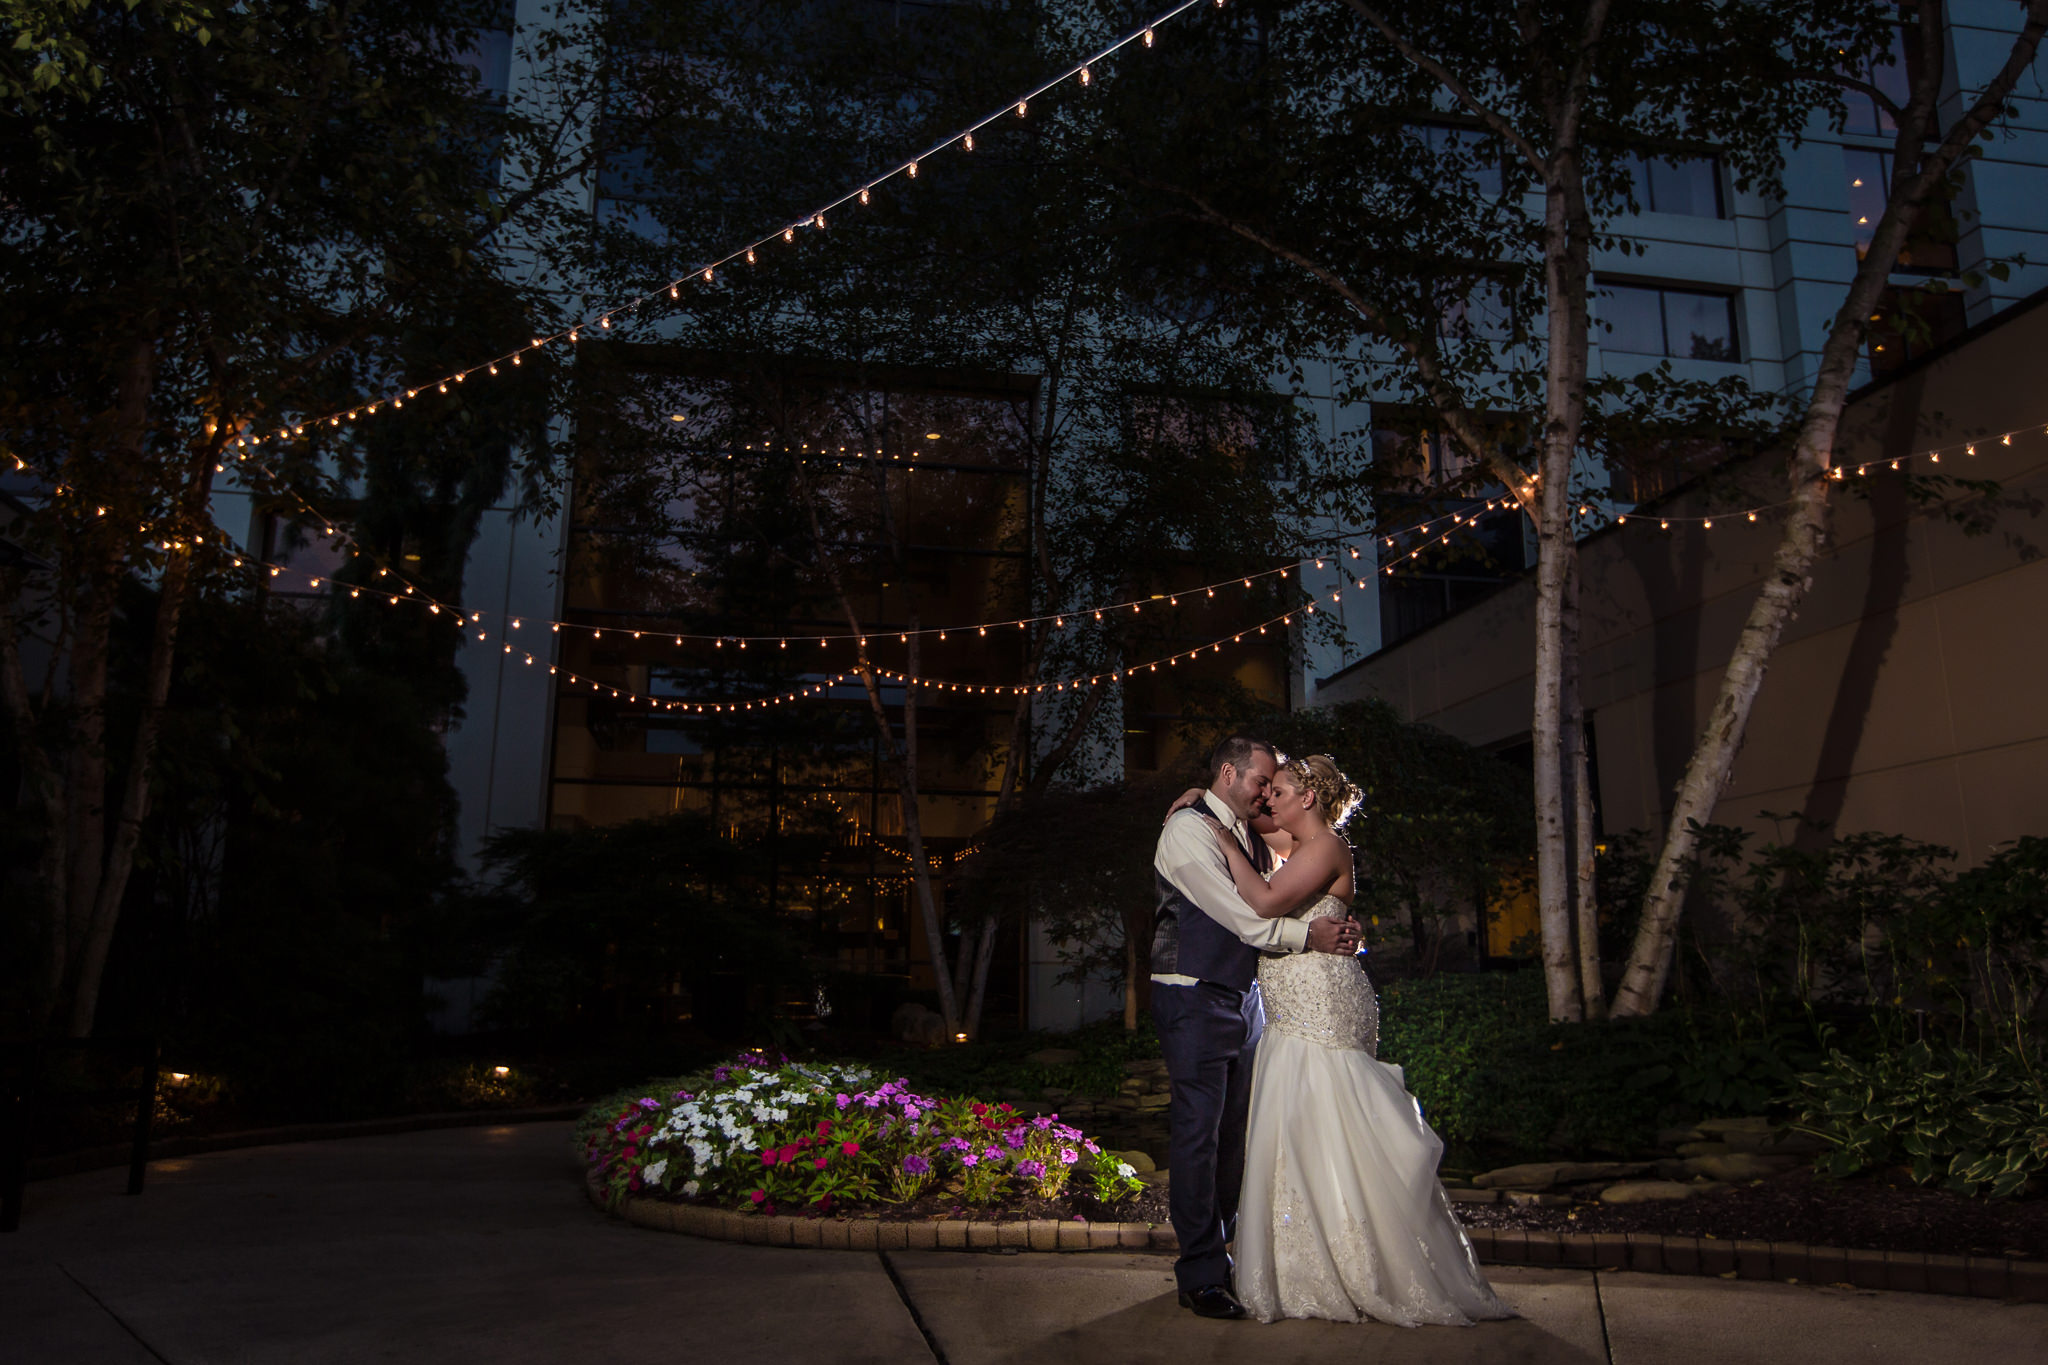 Bride and groom pose at night in the courtyard of the Pittsburgh Airport Marriott